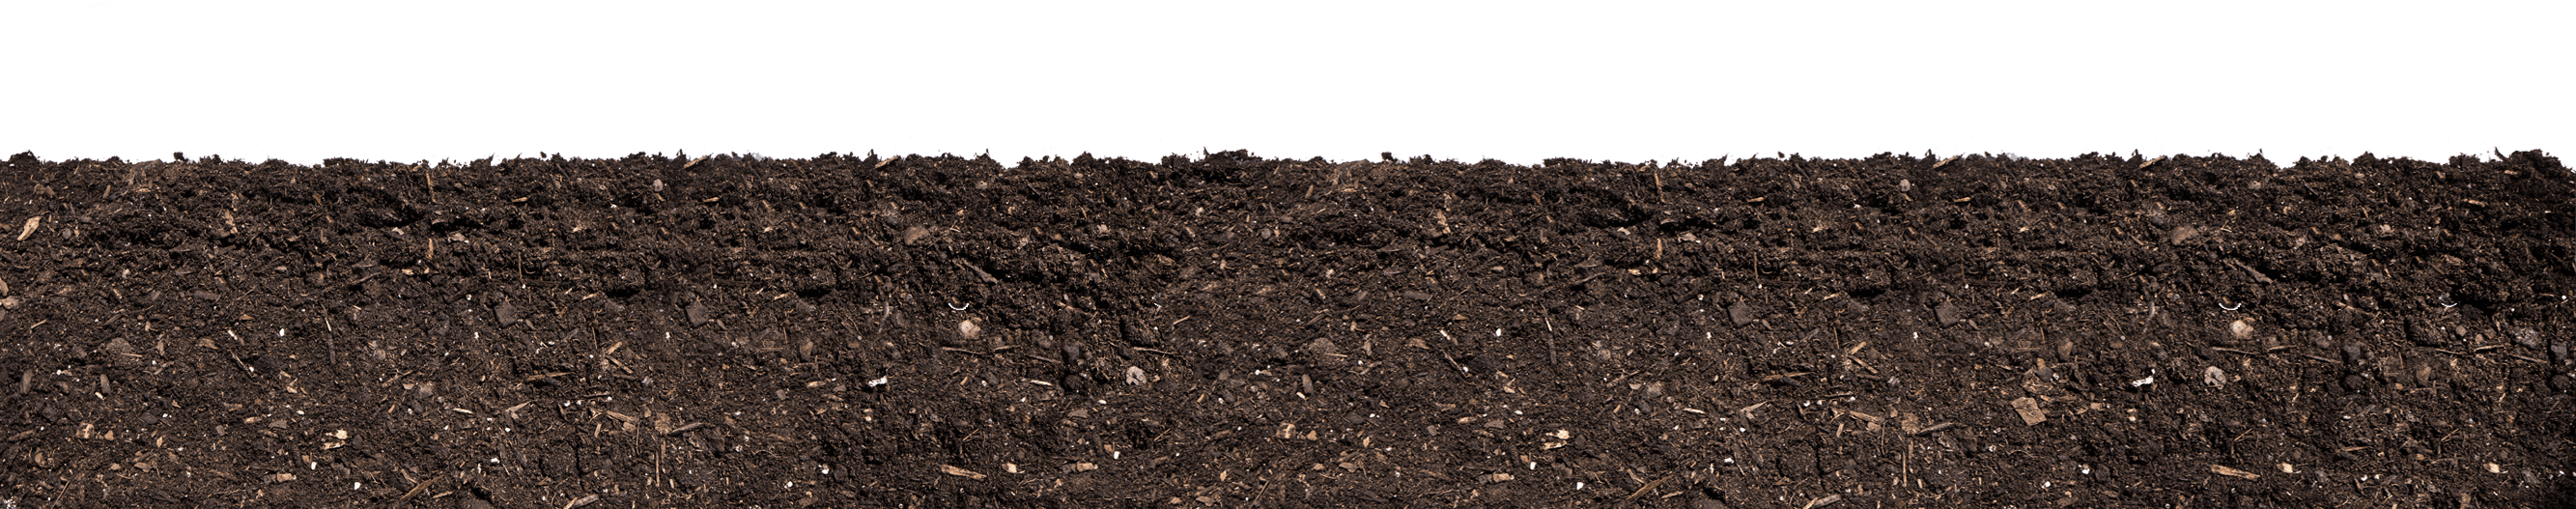 Dirt clipart dirt ground. Pictures transparent png free